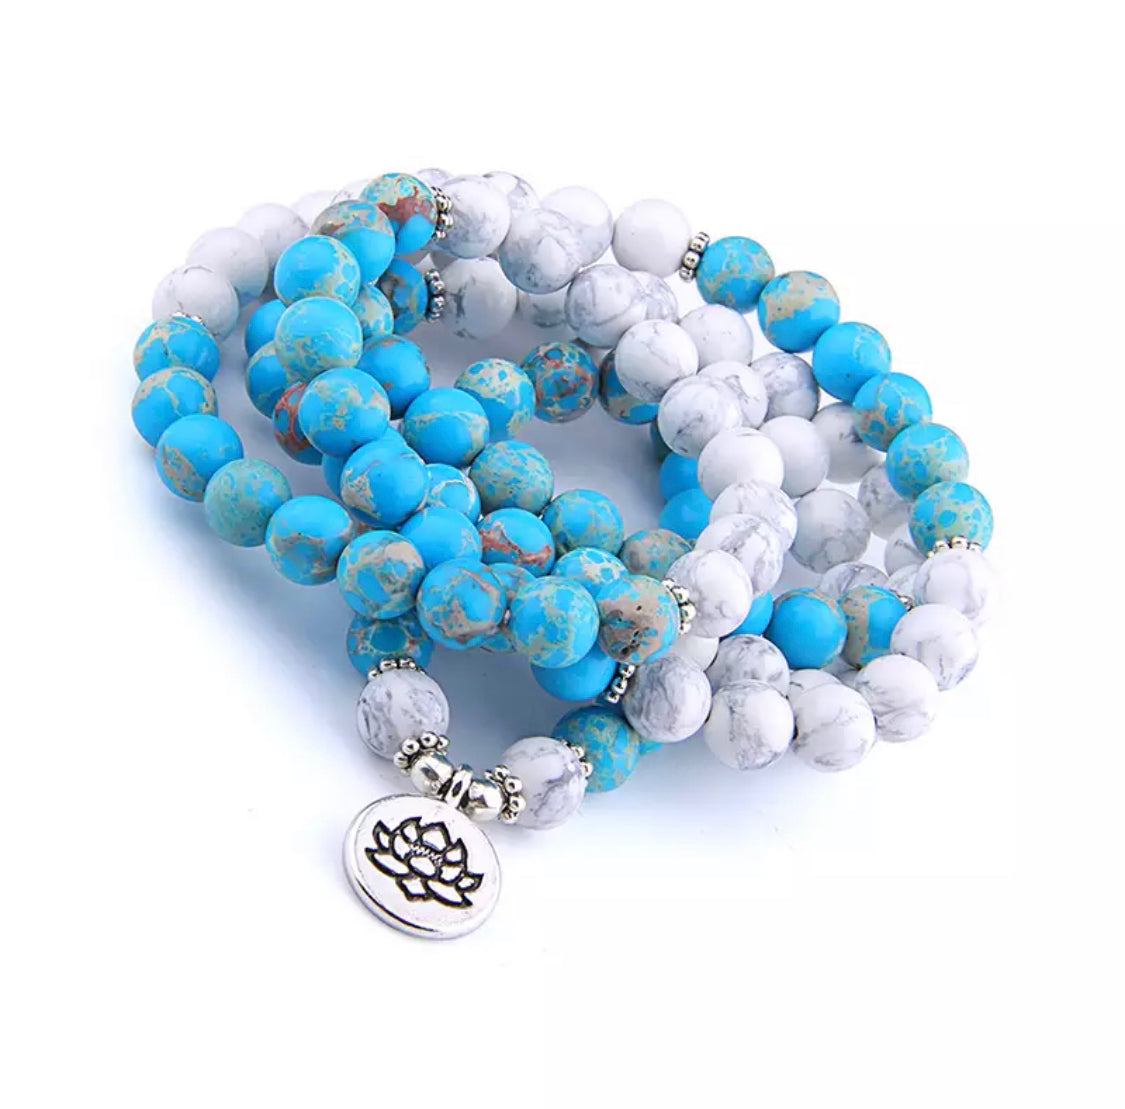 The Mala Lotus Necklace/Bracelet